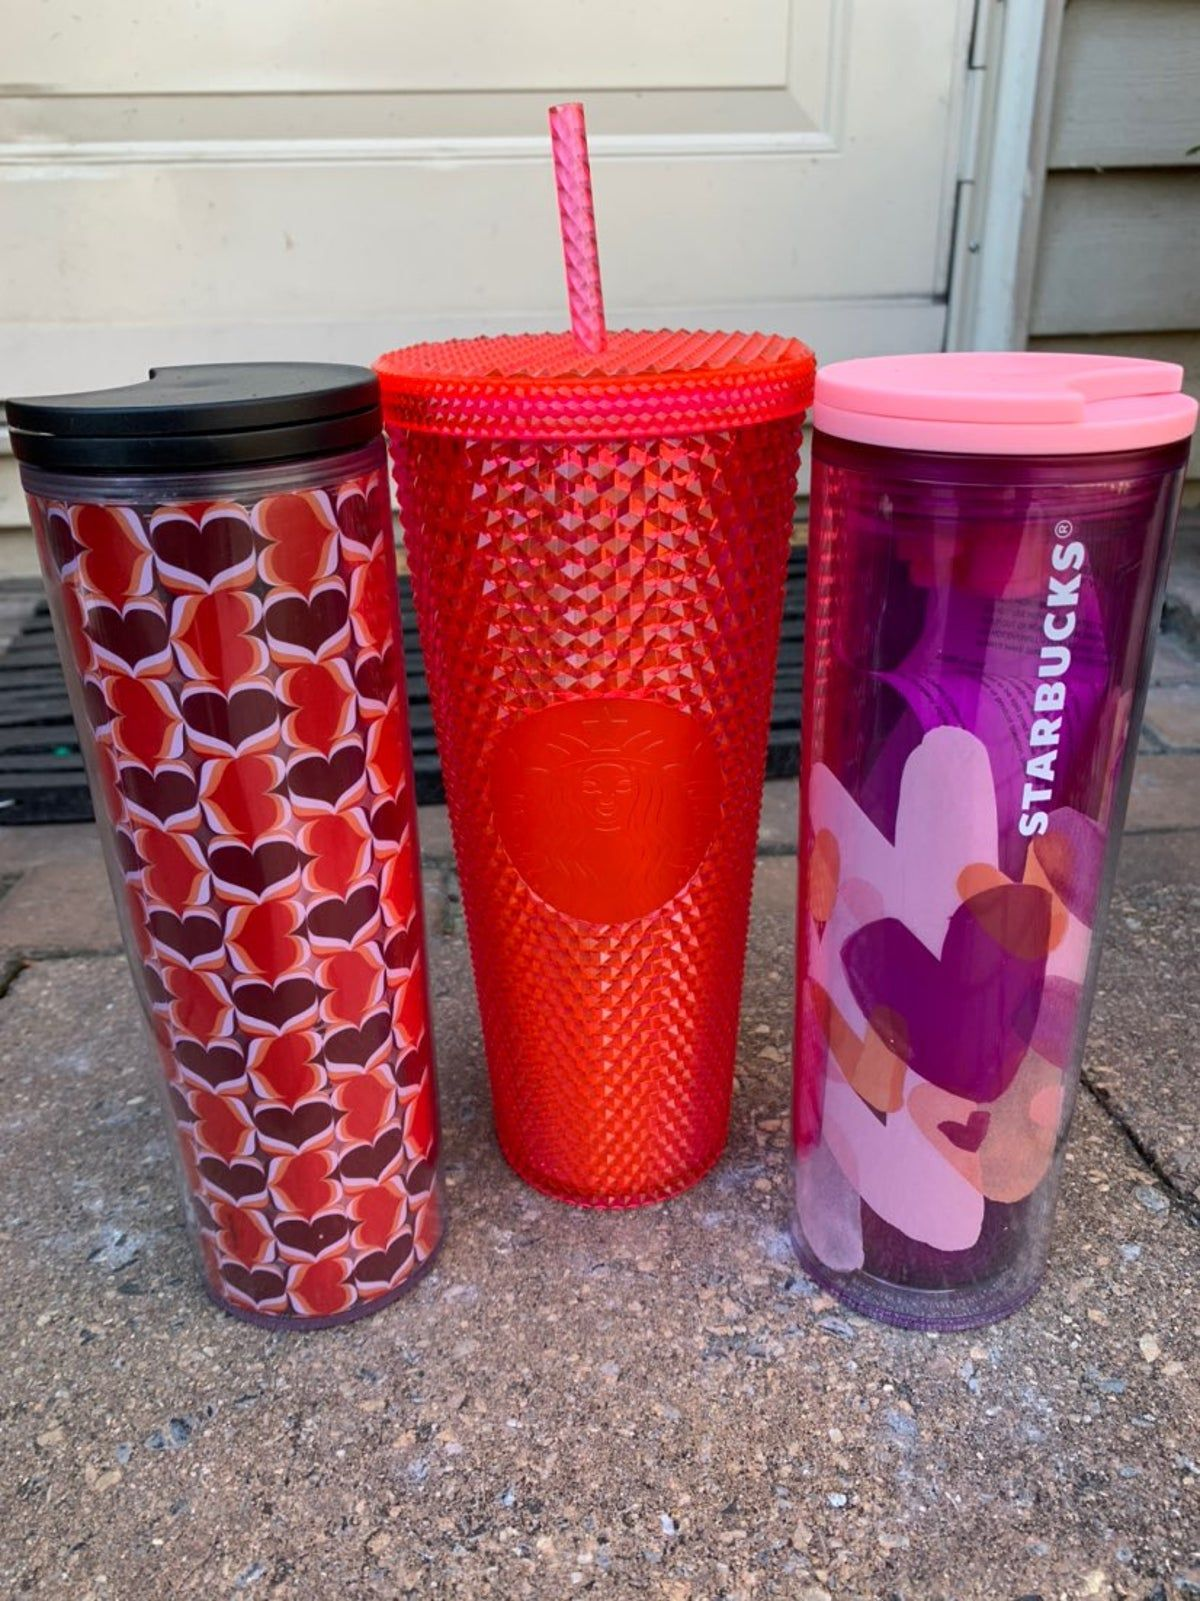 Pin By Constanza Silberstein On Cups Starbucks In 2020 Starbucks Valentines Starbucks Cups Valentine Holiday